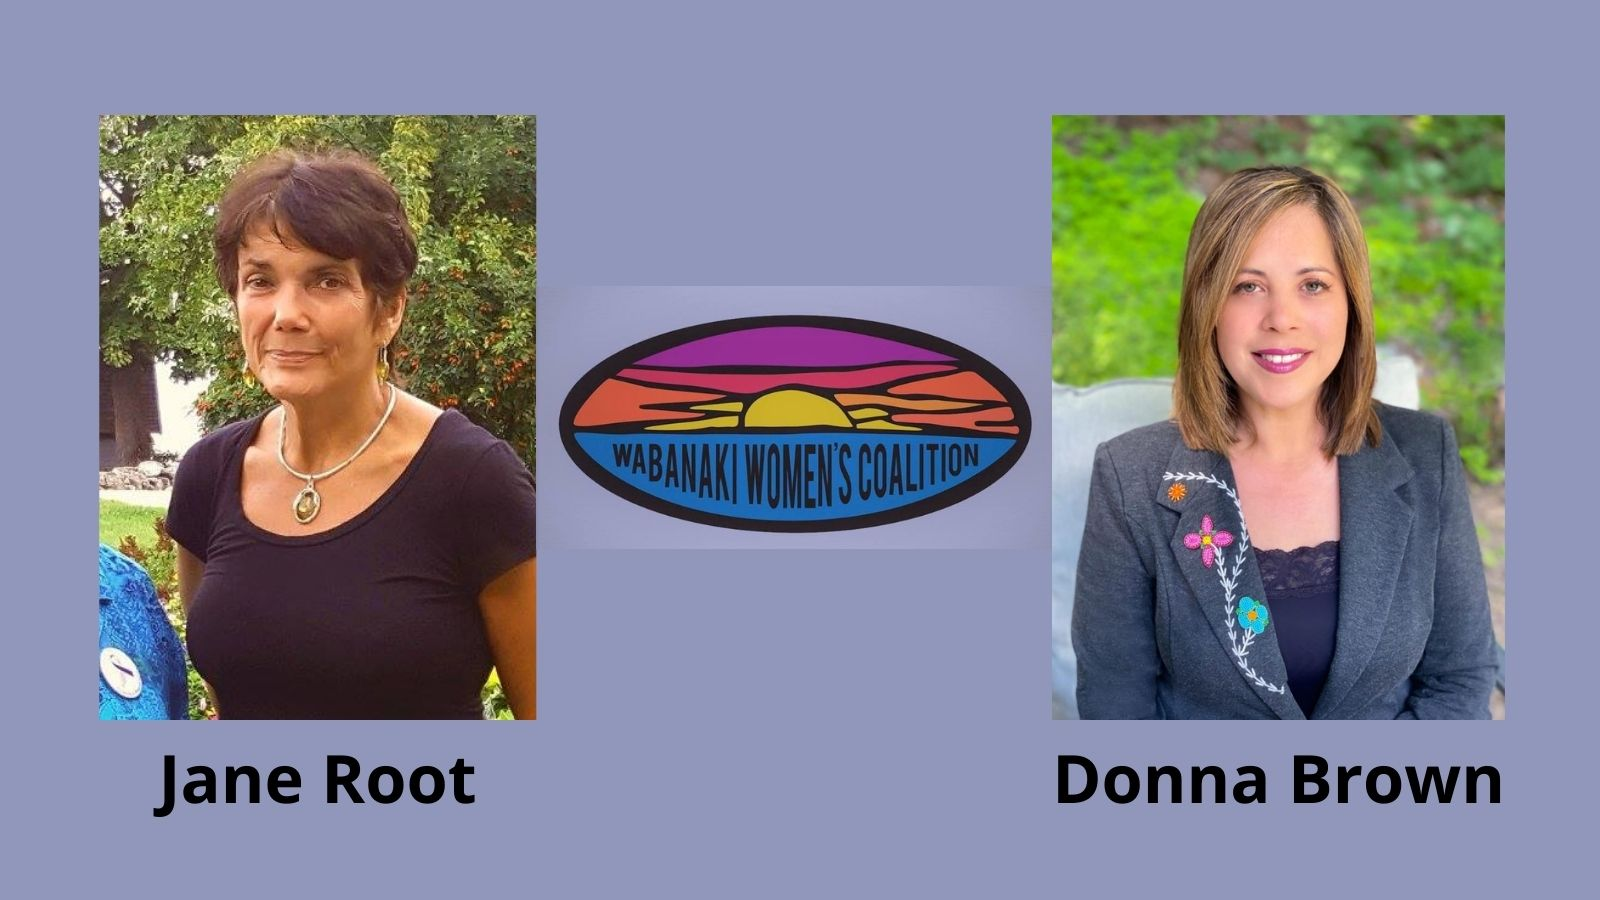 Photo on right of Jane Root with Wabanaki Women's Coalition logo in center next to photo of Donna Brown on left, with text of names below each photo.